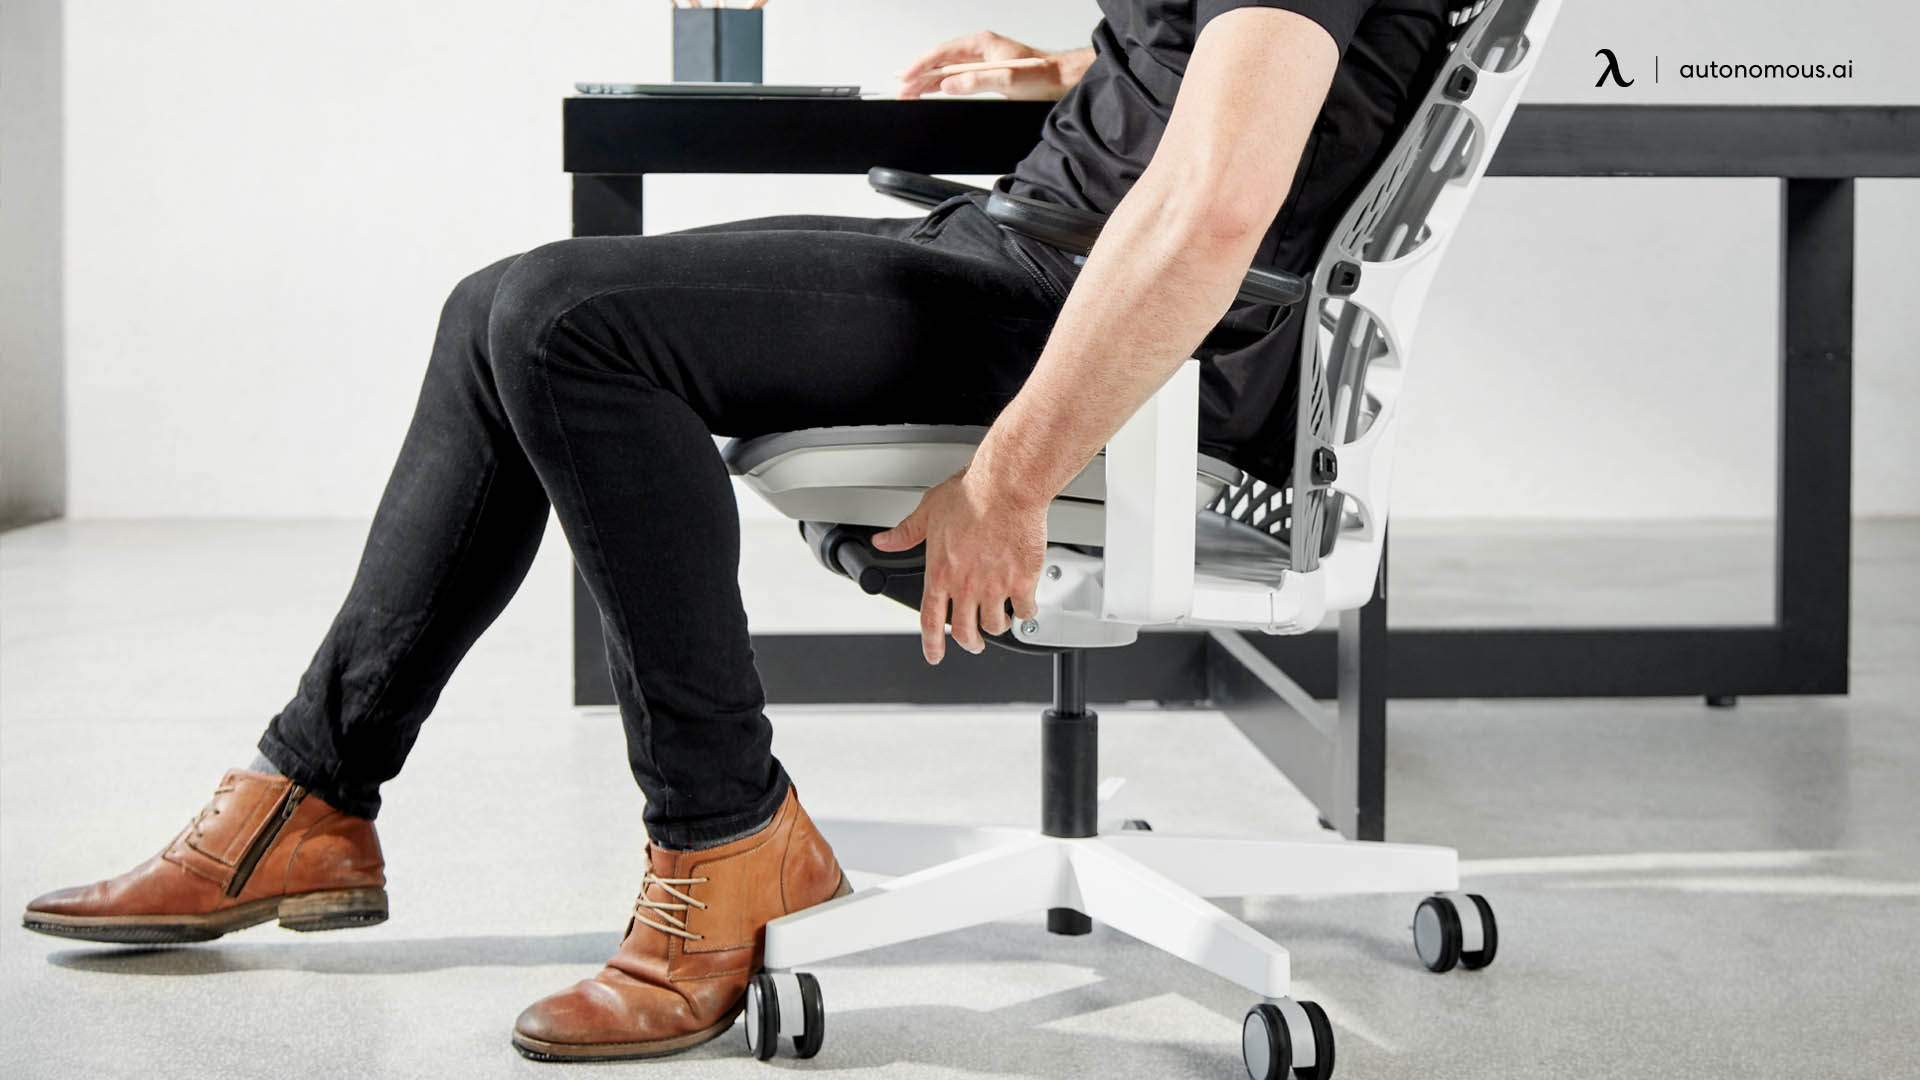 Tips for Buying an Affordable Ergonomic Chair